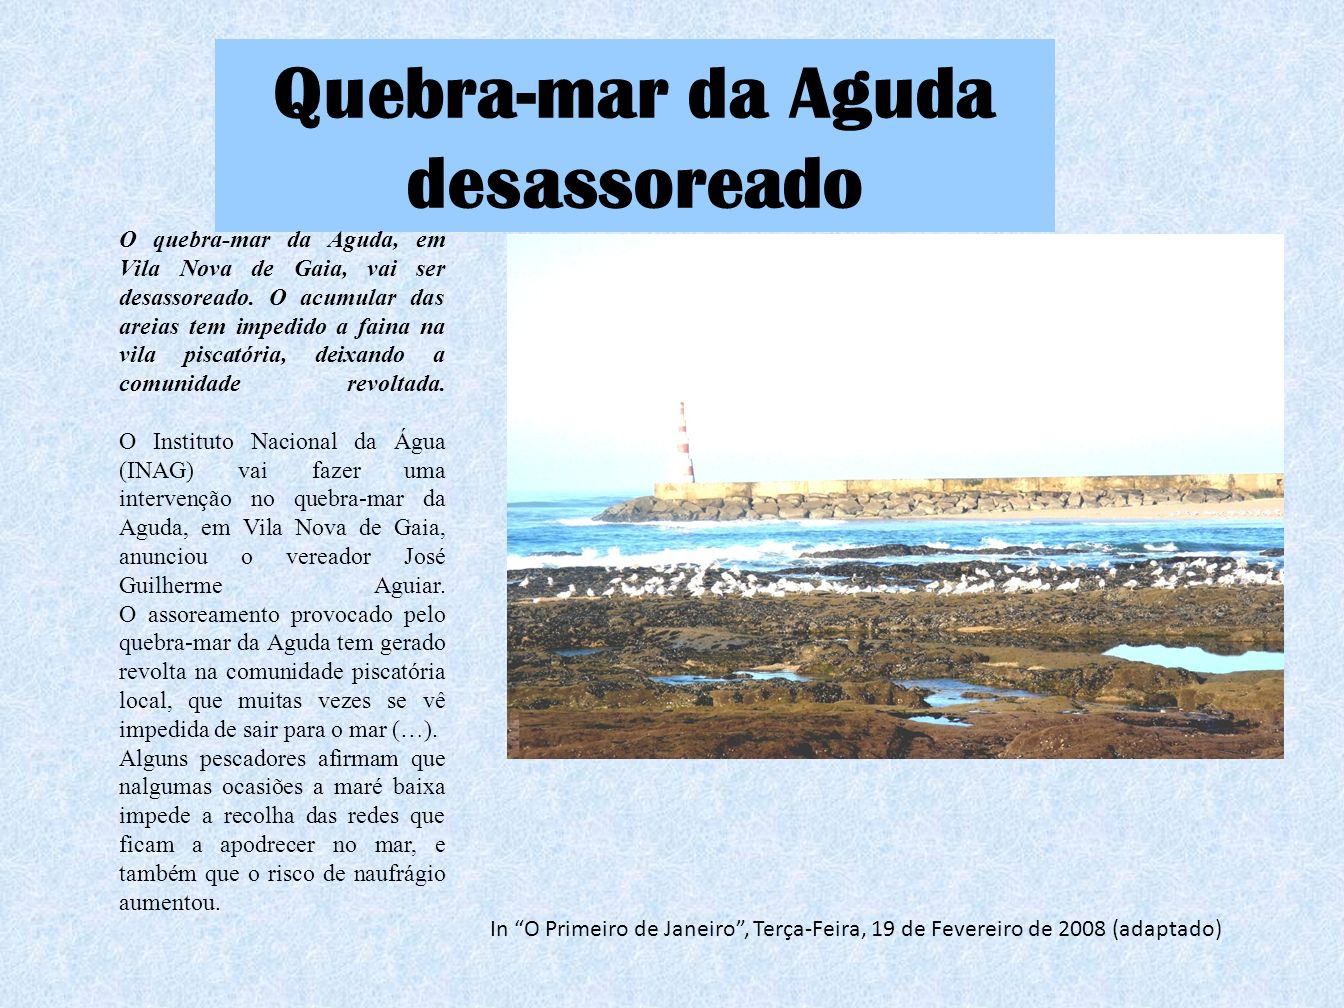 Quebra-mar da Aguda desassoreado